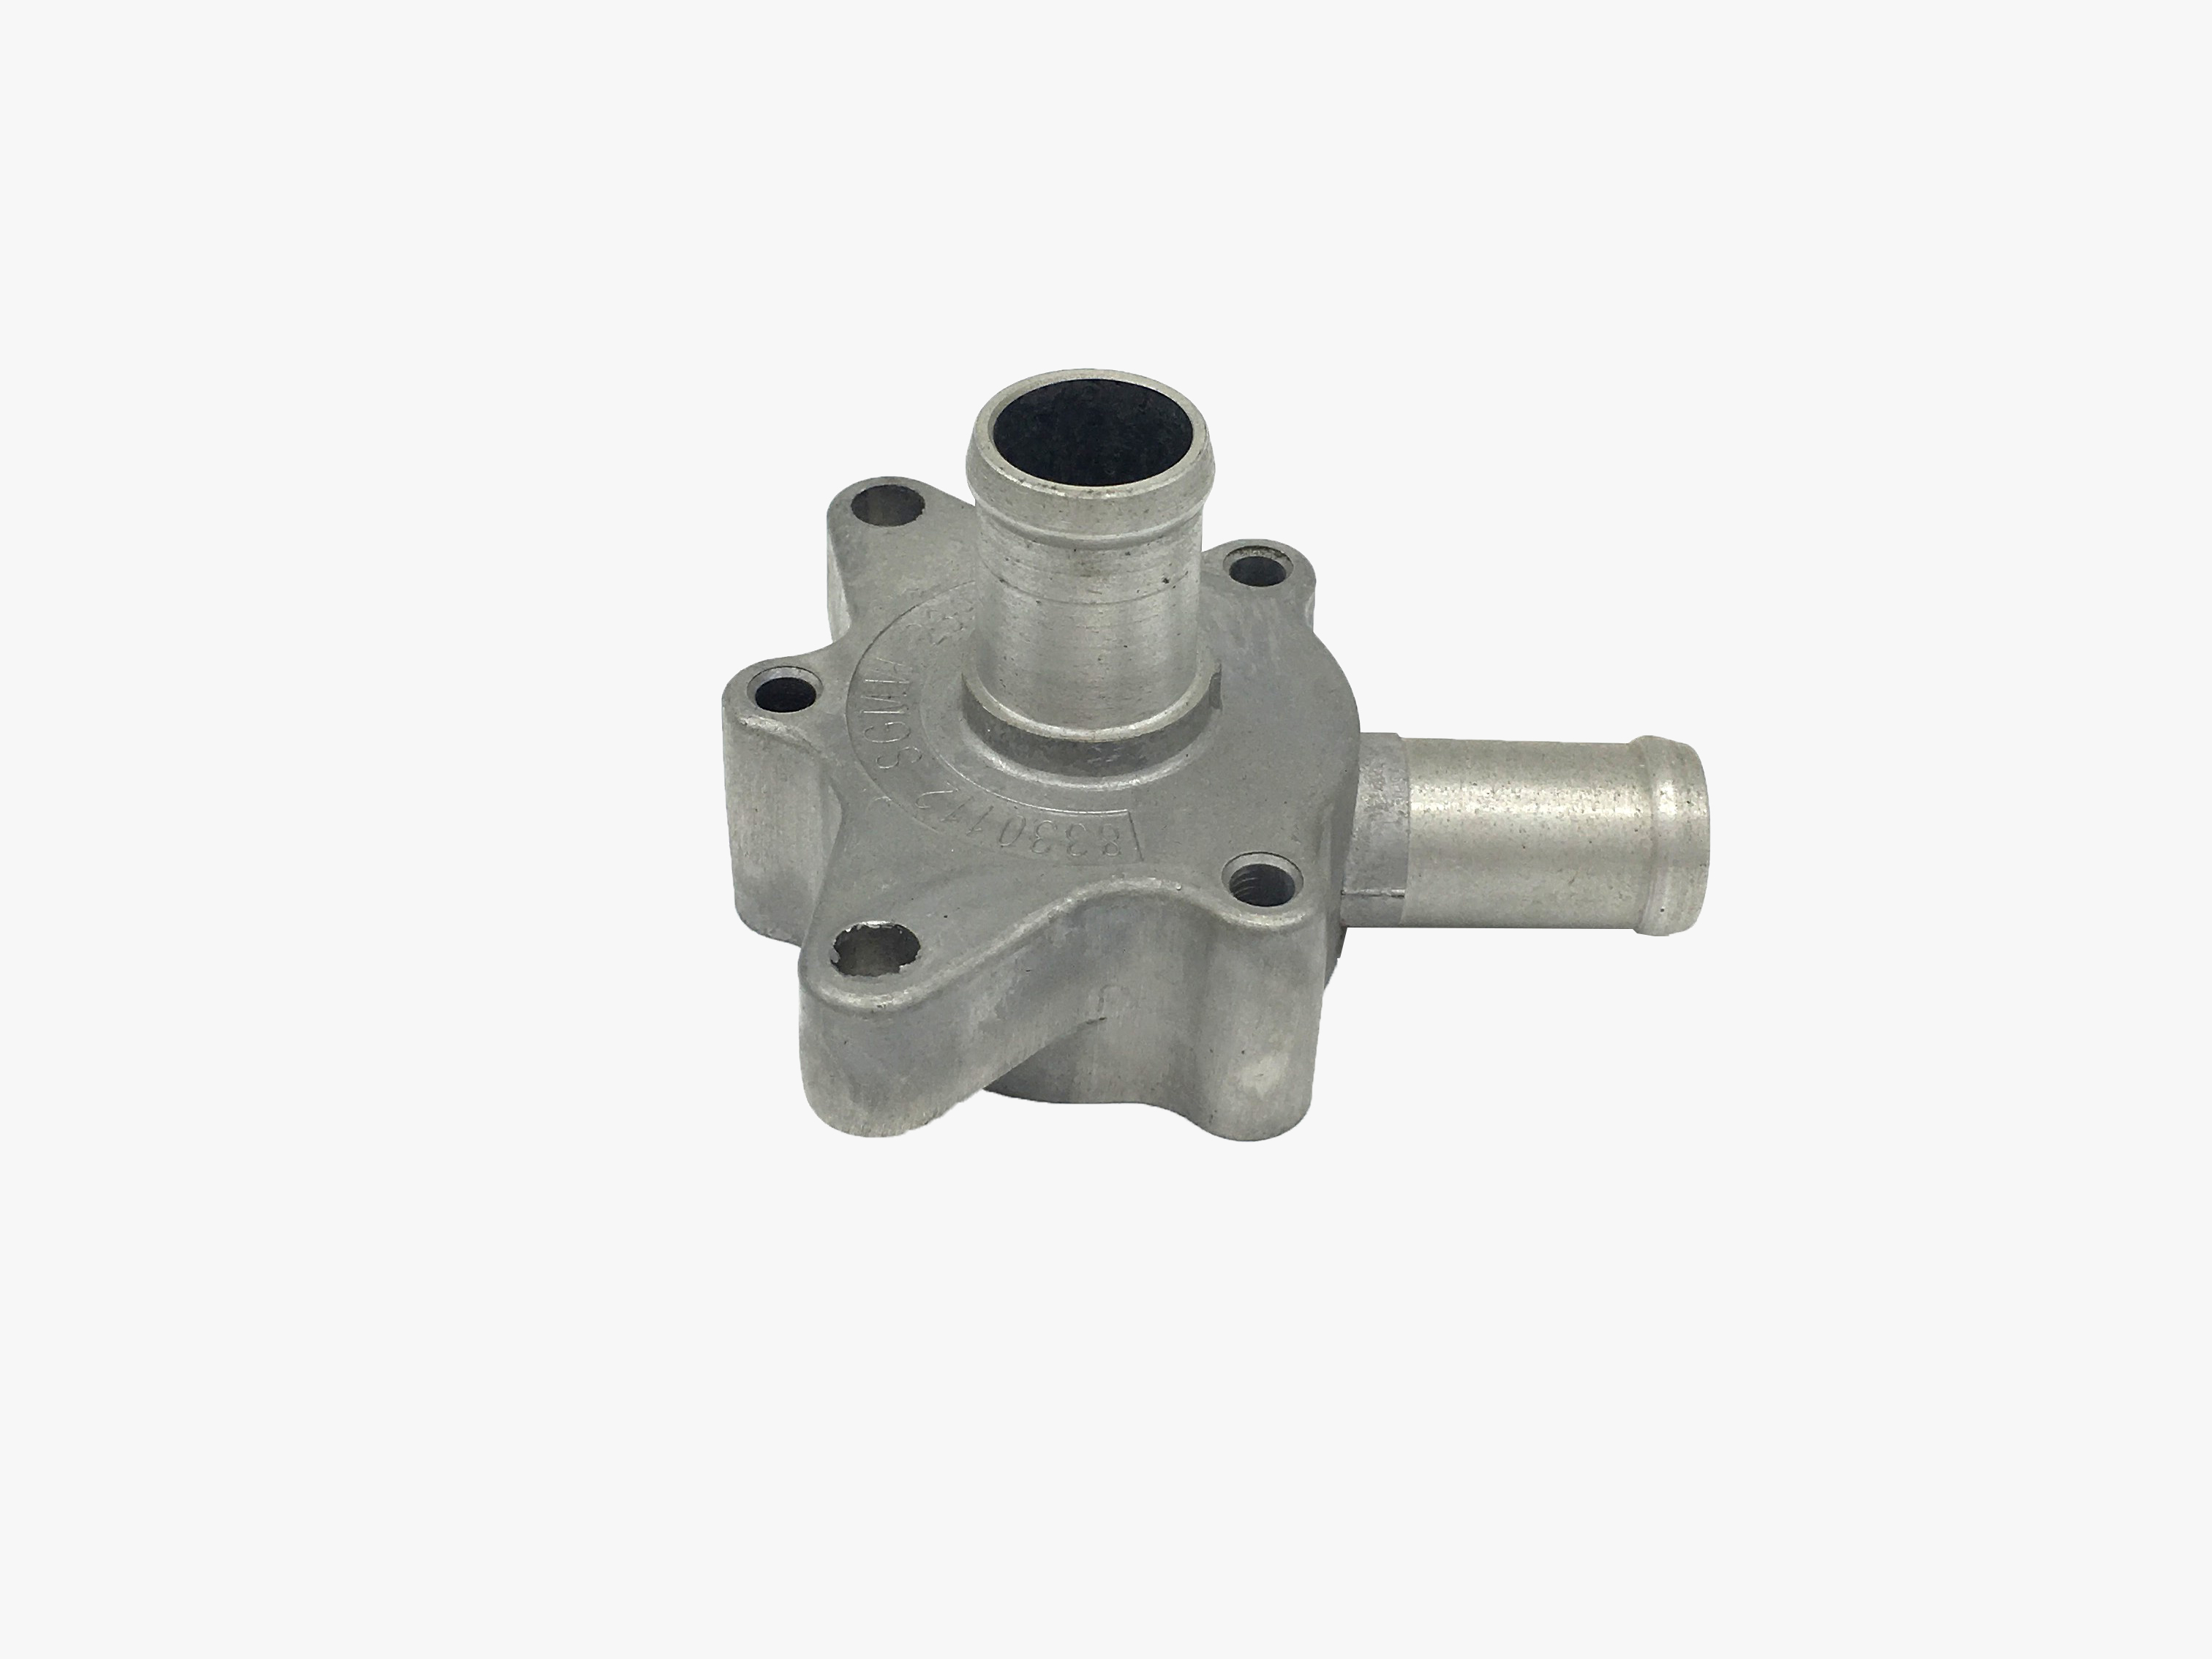 Precision aluminum die casting instrument accessories